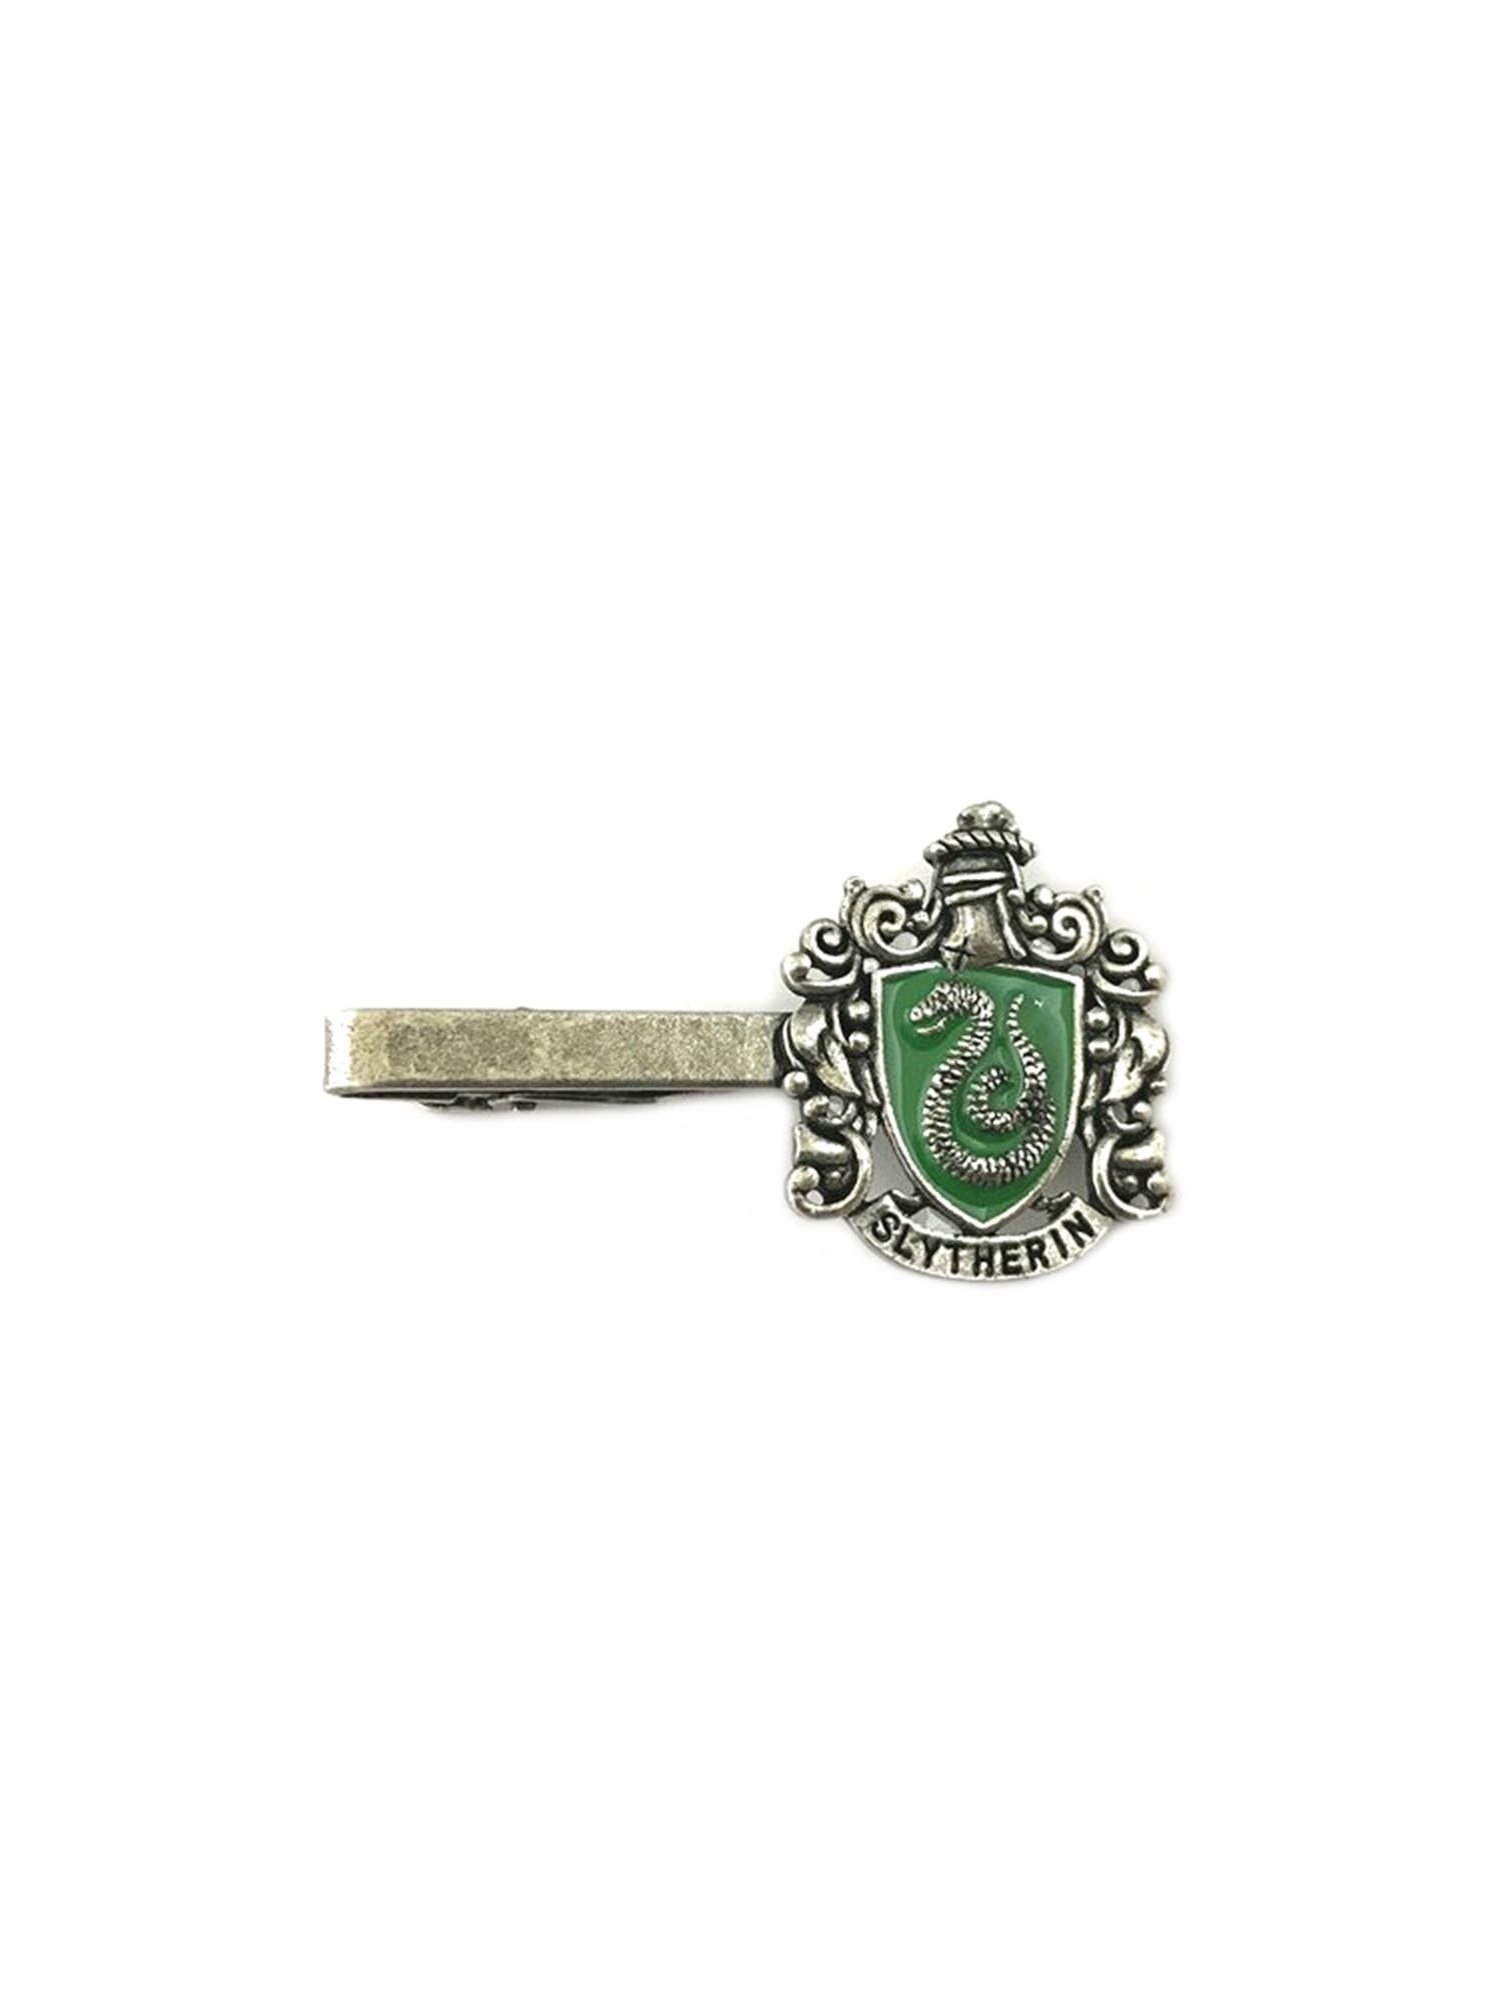 Harry Potter Slytherin Crest Silver Tone Tie Bar w/Gift Box By Superheroes